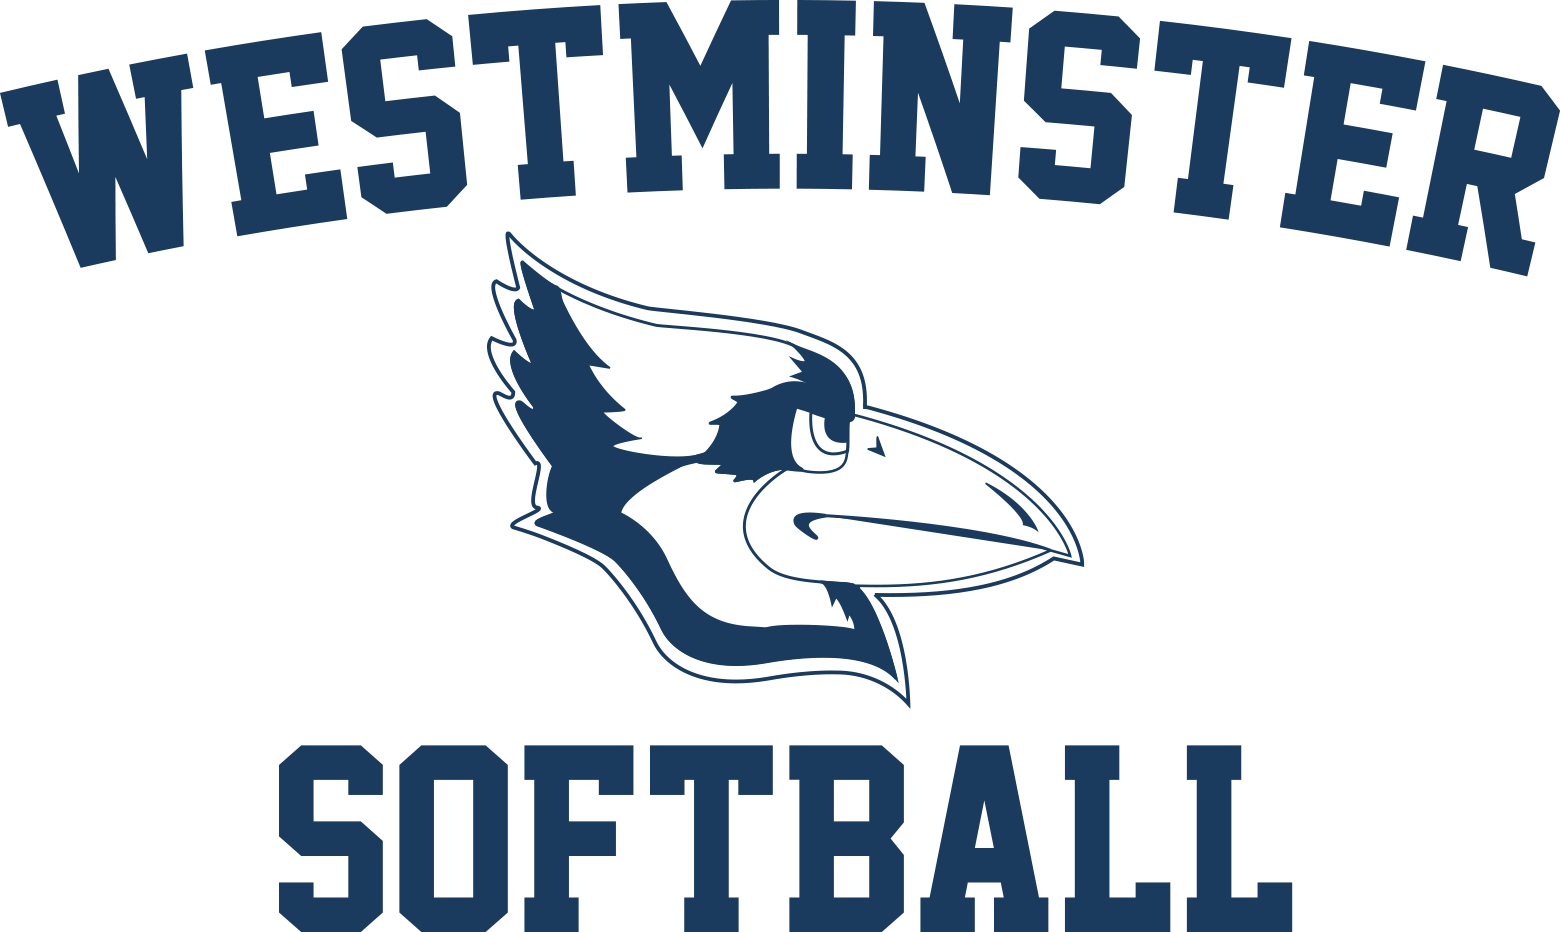 Westminster Softball Adds Two to Complete 2019 Roster